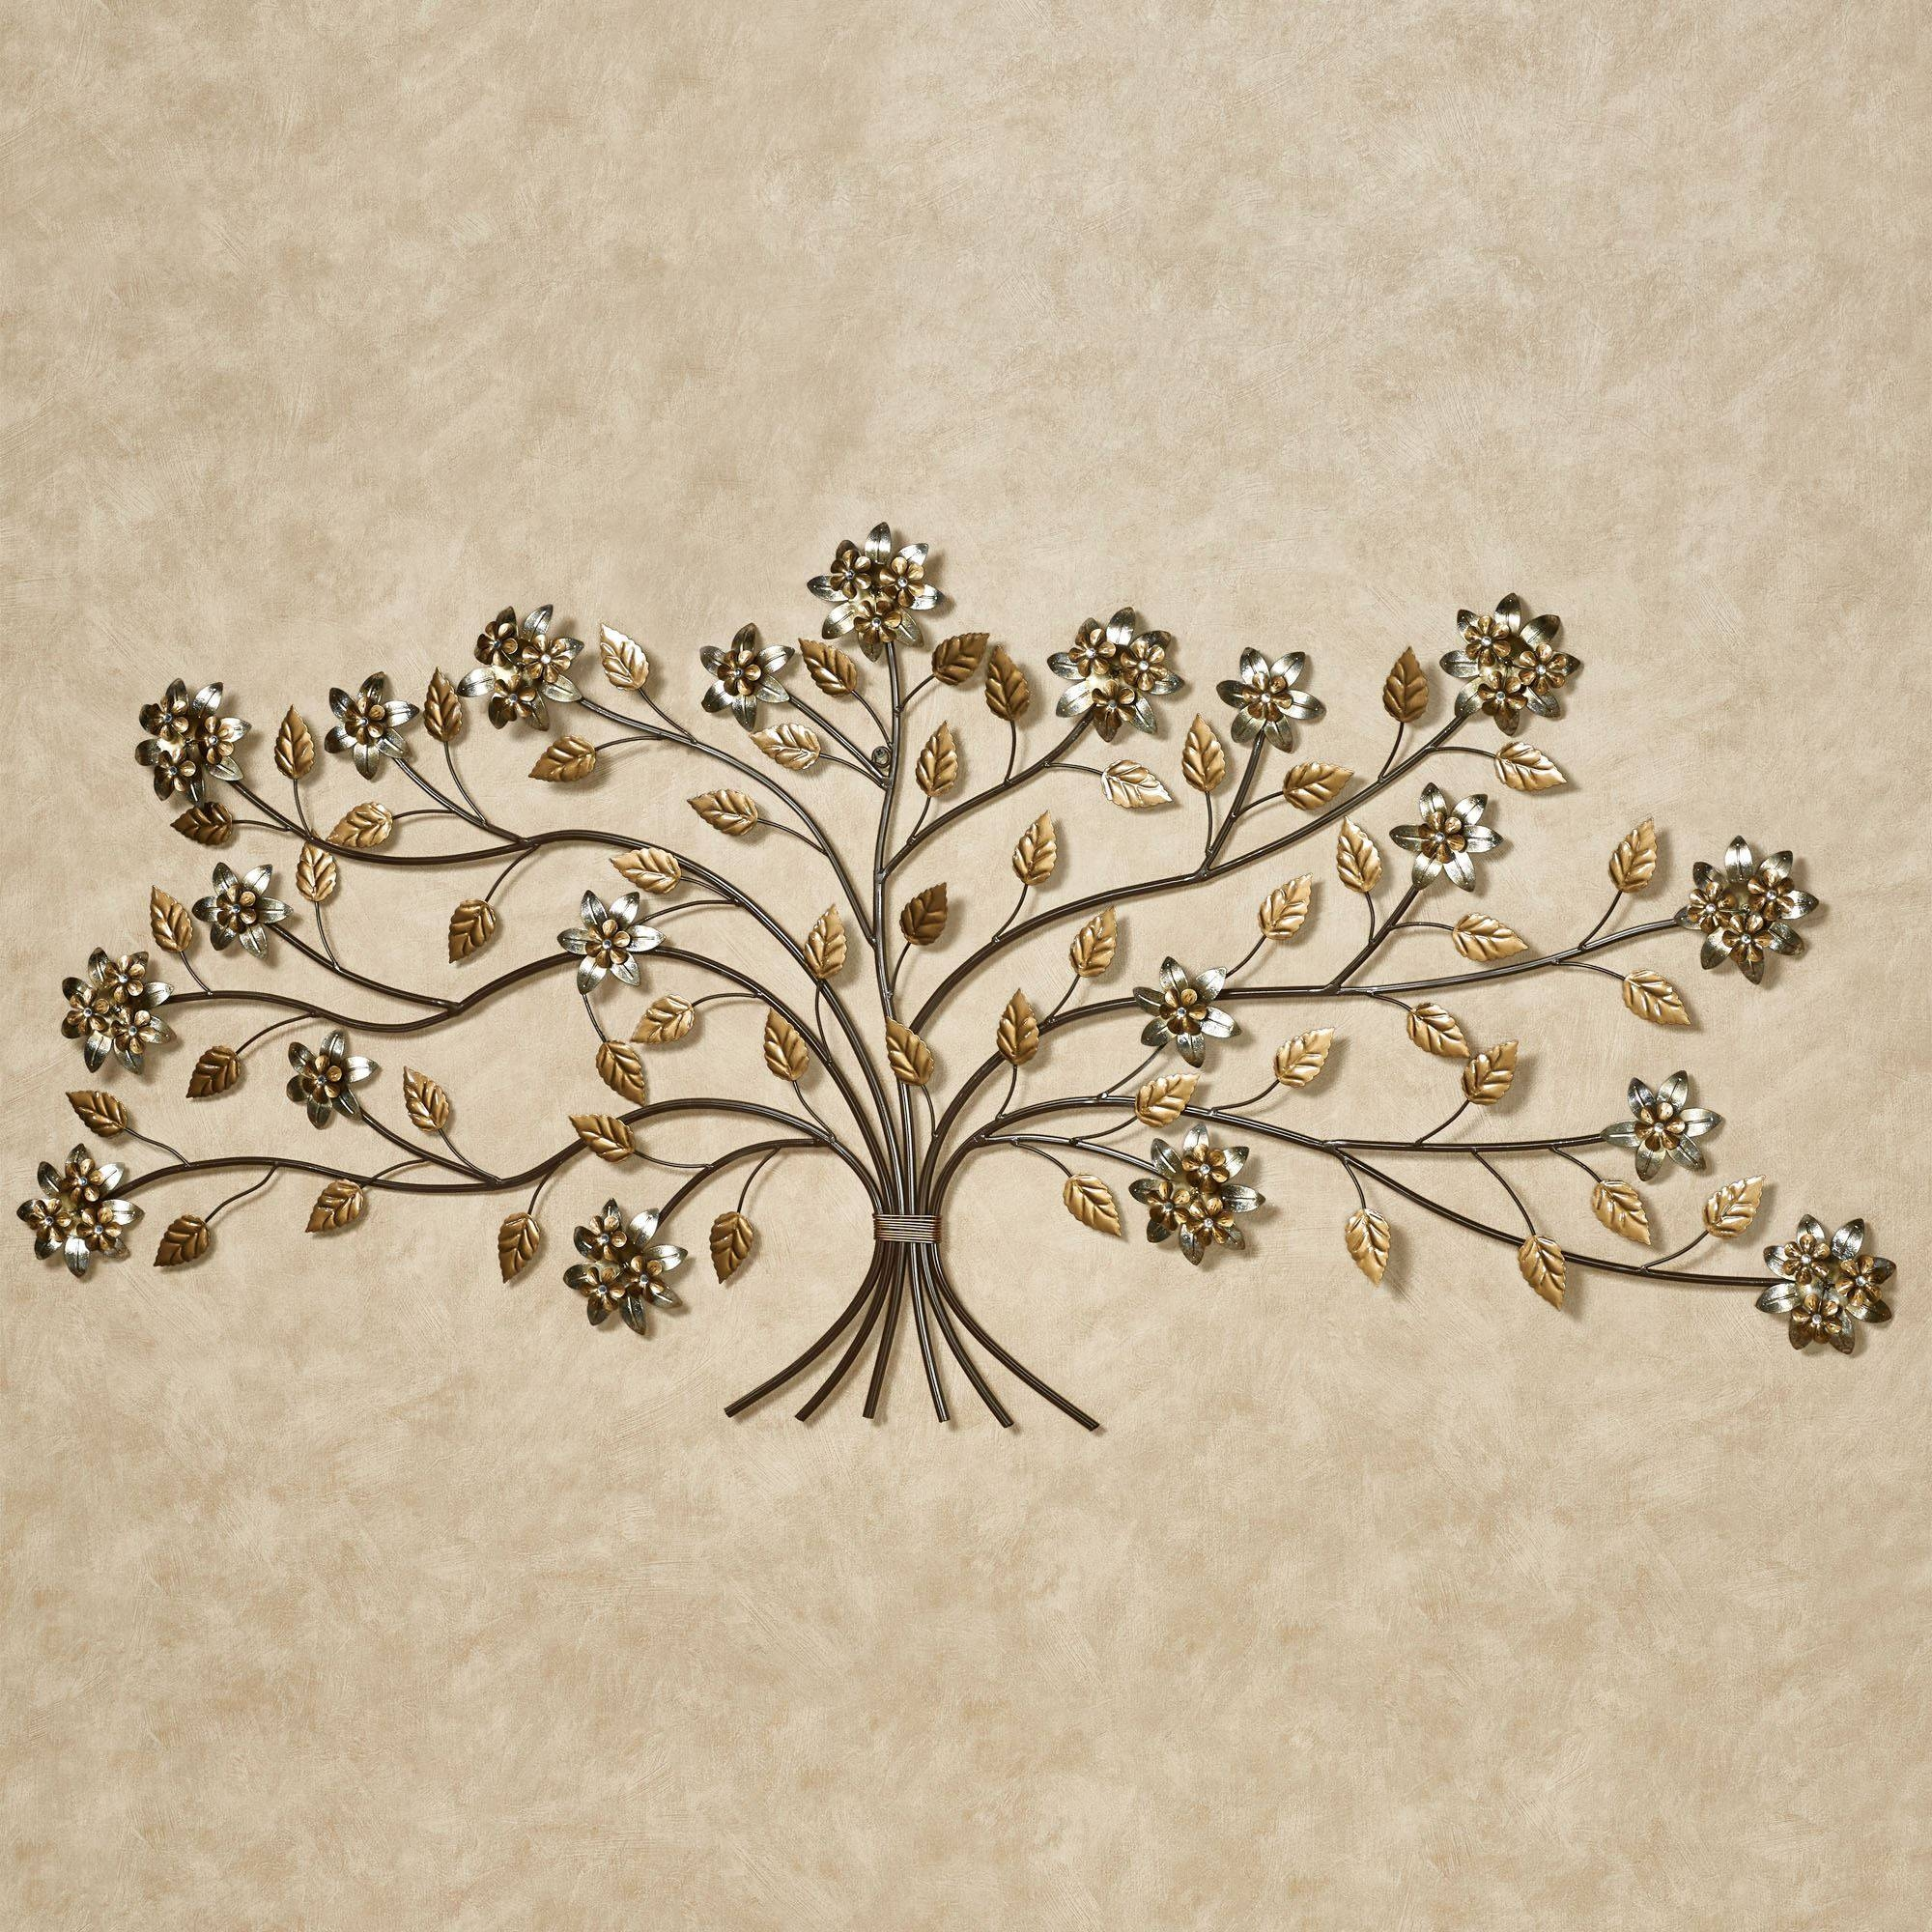 Natural Elements Metal Wall Sculptures | Touch Of Class Intended For Most Recently Released Elements Metal Wall Art (View 12 of 20)